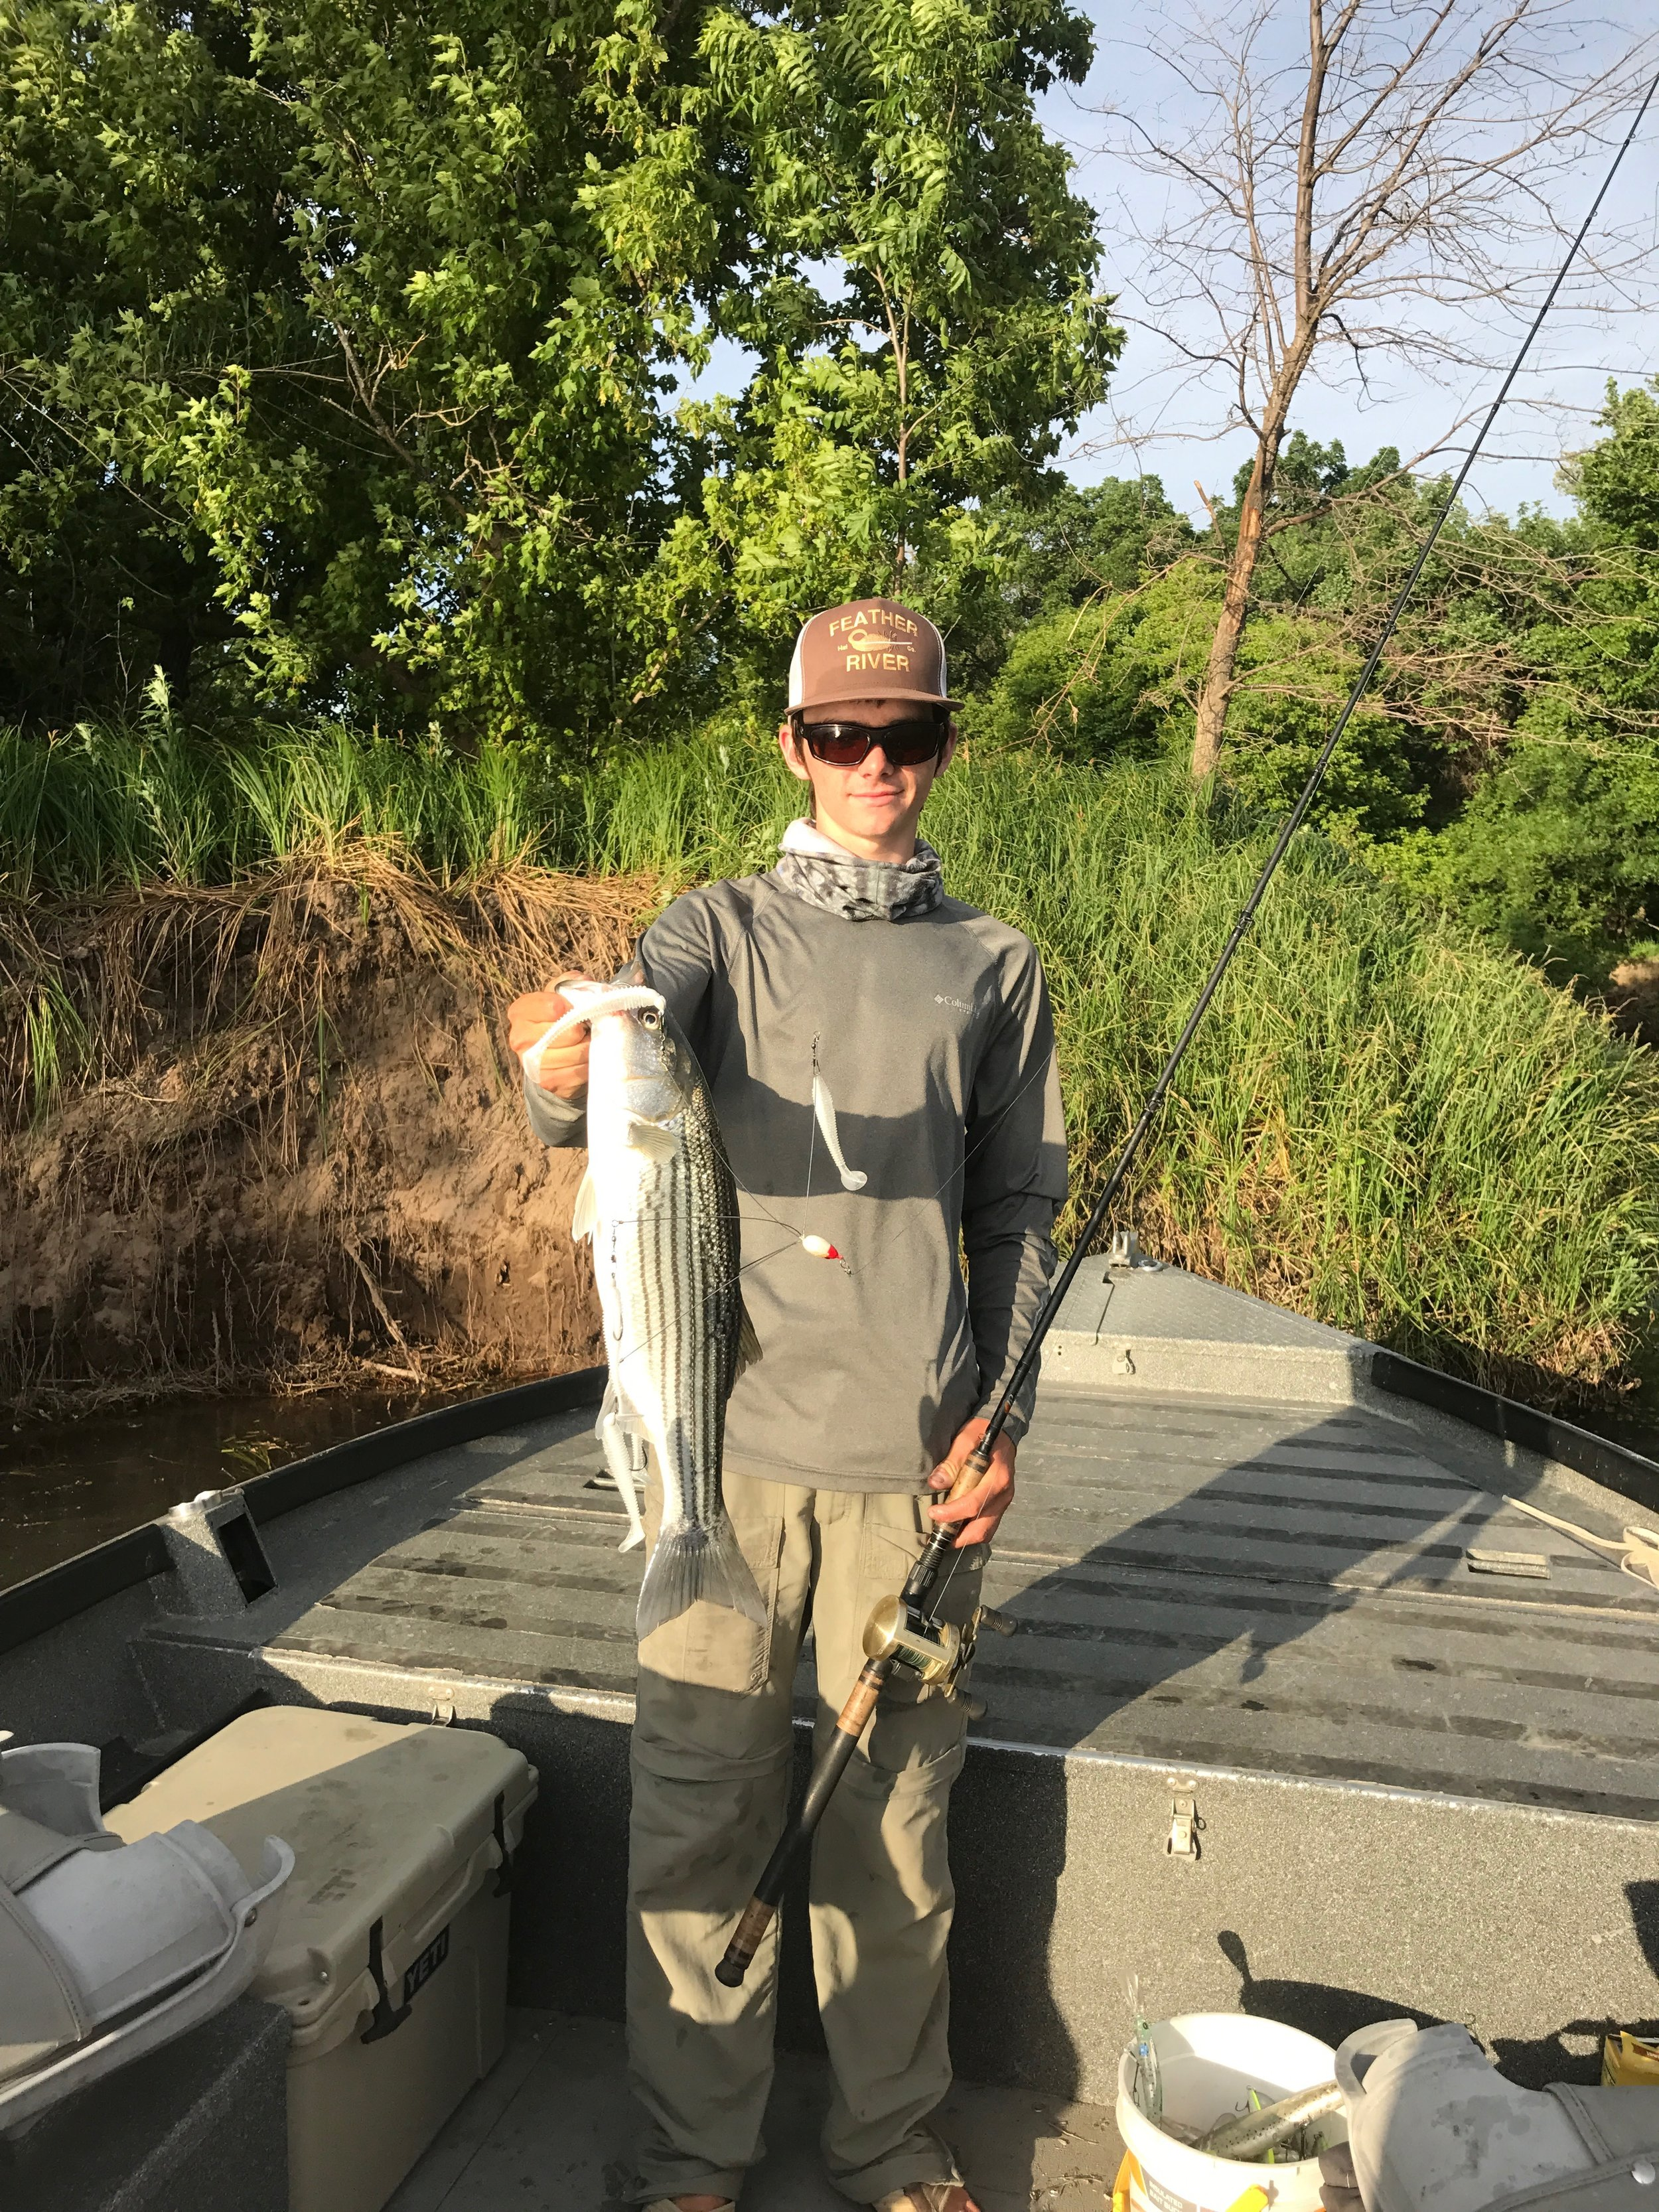 Ryan Tripp took a trip up the Sacramento River on May 24, 2017 to find decent action, catching grade size striped bass while chucking the Rig through shallow riffles and under power lines.